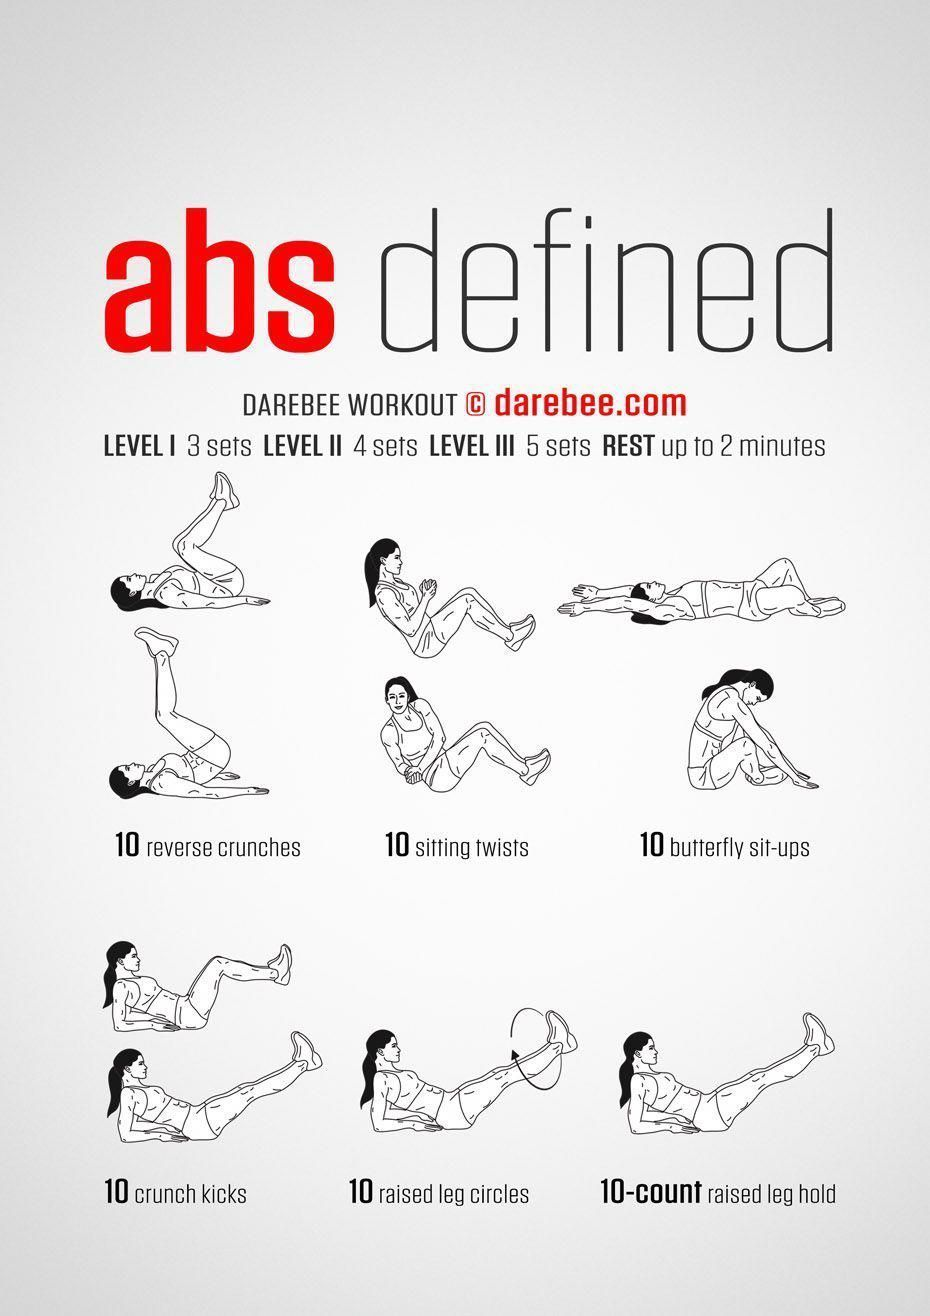 Abs Defined Workout #abswomendiet #upperabworkouts Abs Defined Workout #abswomendiet #upperabworkouts Abs Defined Workout #abswomendiet #upperabworkouts Abs Defined Workout #abswomendiet #upperabworkouts Abs Defined Workout #abswomendiet #upperabworkouts Abs Defined Workout #abswomendiet #upperabworkouts Abs Defined Workout #abswomendiet #upperabworkouts Abs Defined Workout #abswomendiet #upperabworkouts